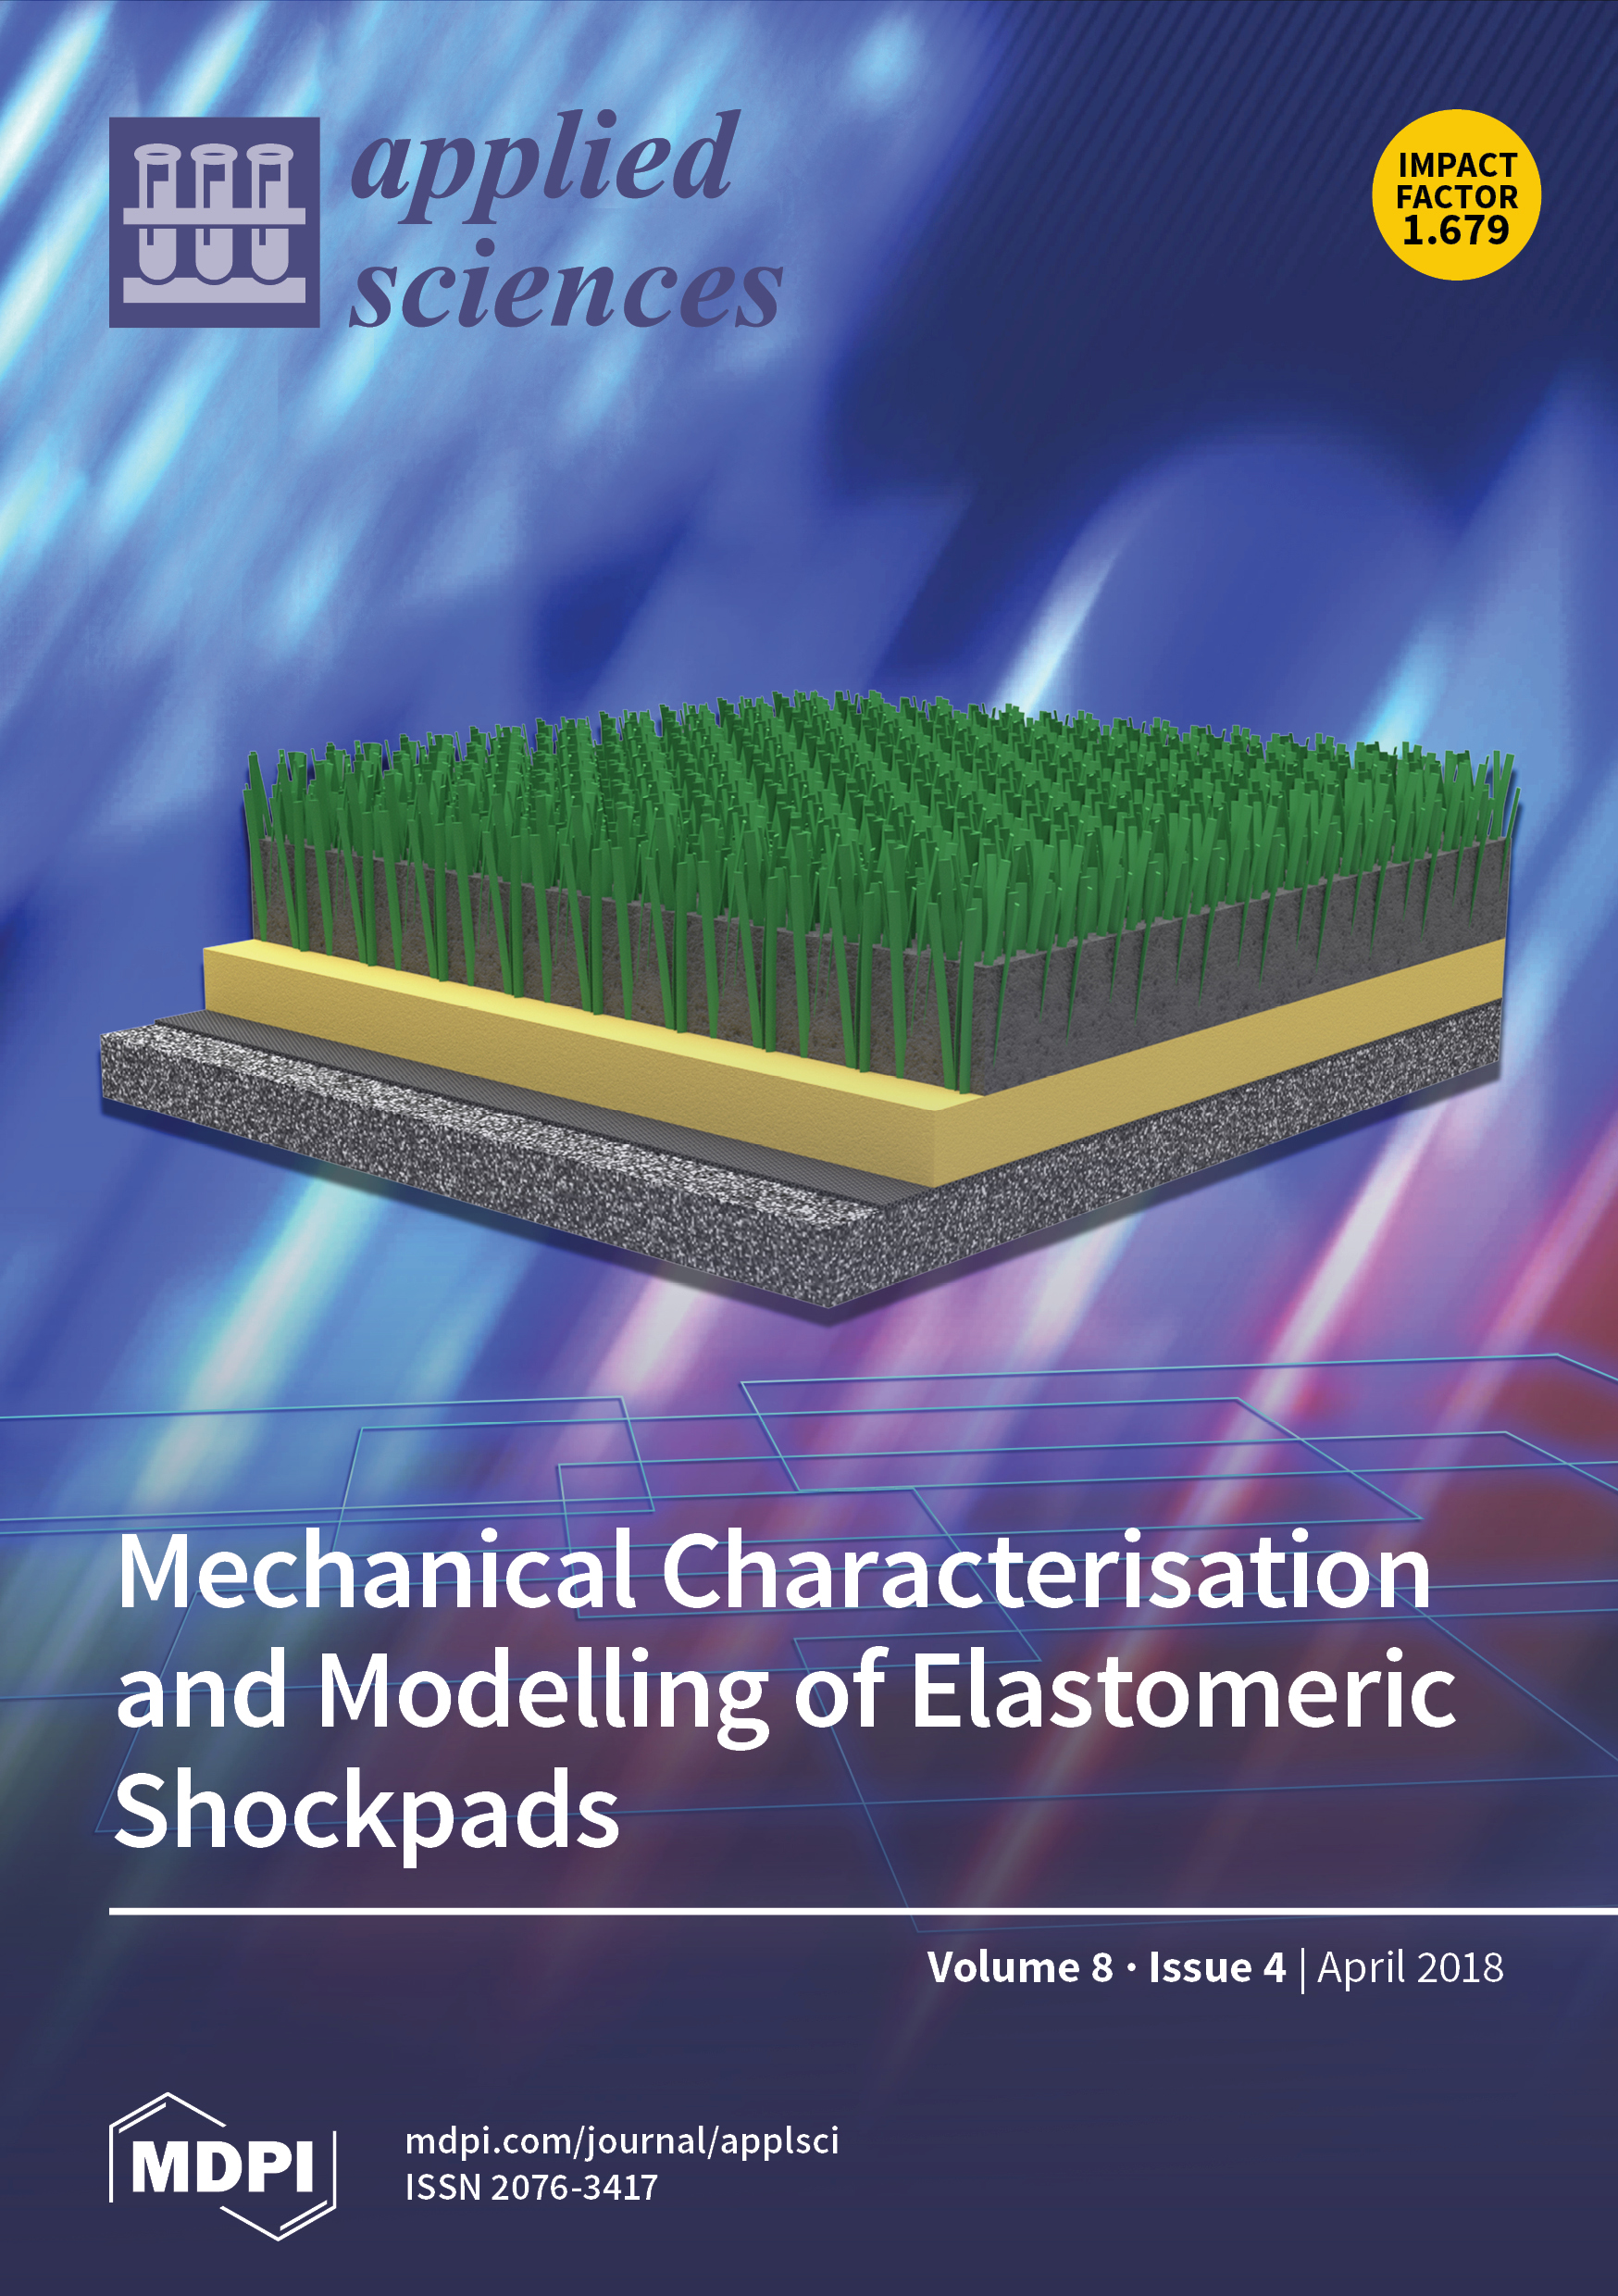 The Figure Displays A Schematic Of Third Generation 3G Artificial Turf Surface Used For